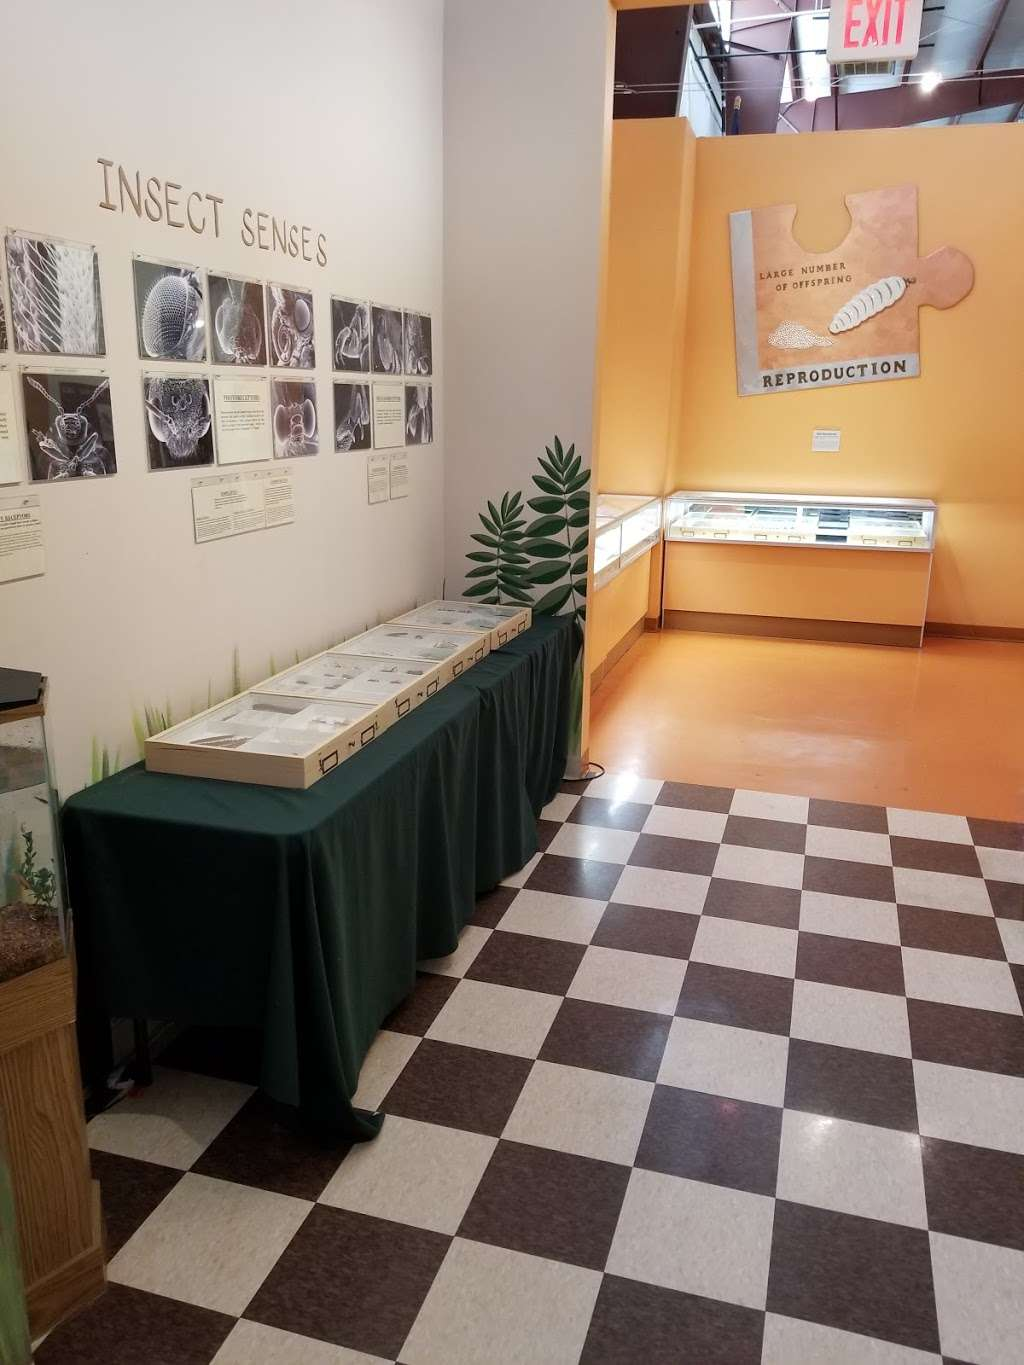 Insectropolis - museum  | Photo 6 of 10 | Address: 1761 U.S. 9, Toms River, NJ 08755, USA | Phone: (732) 349-7090